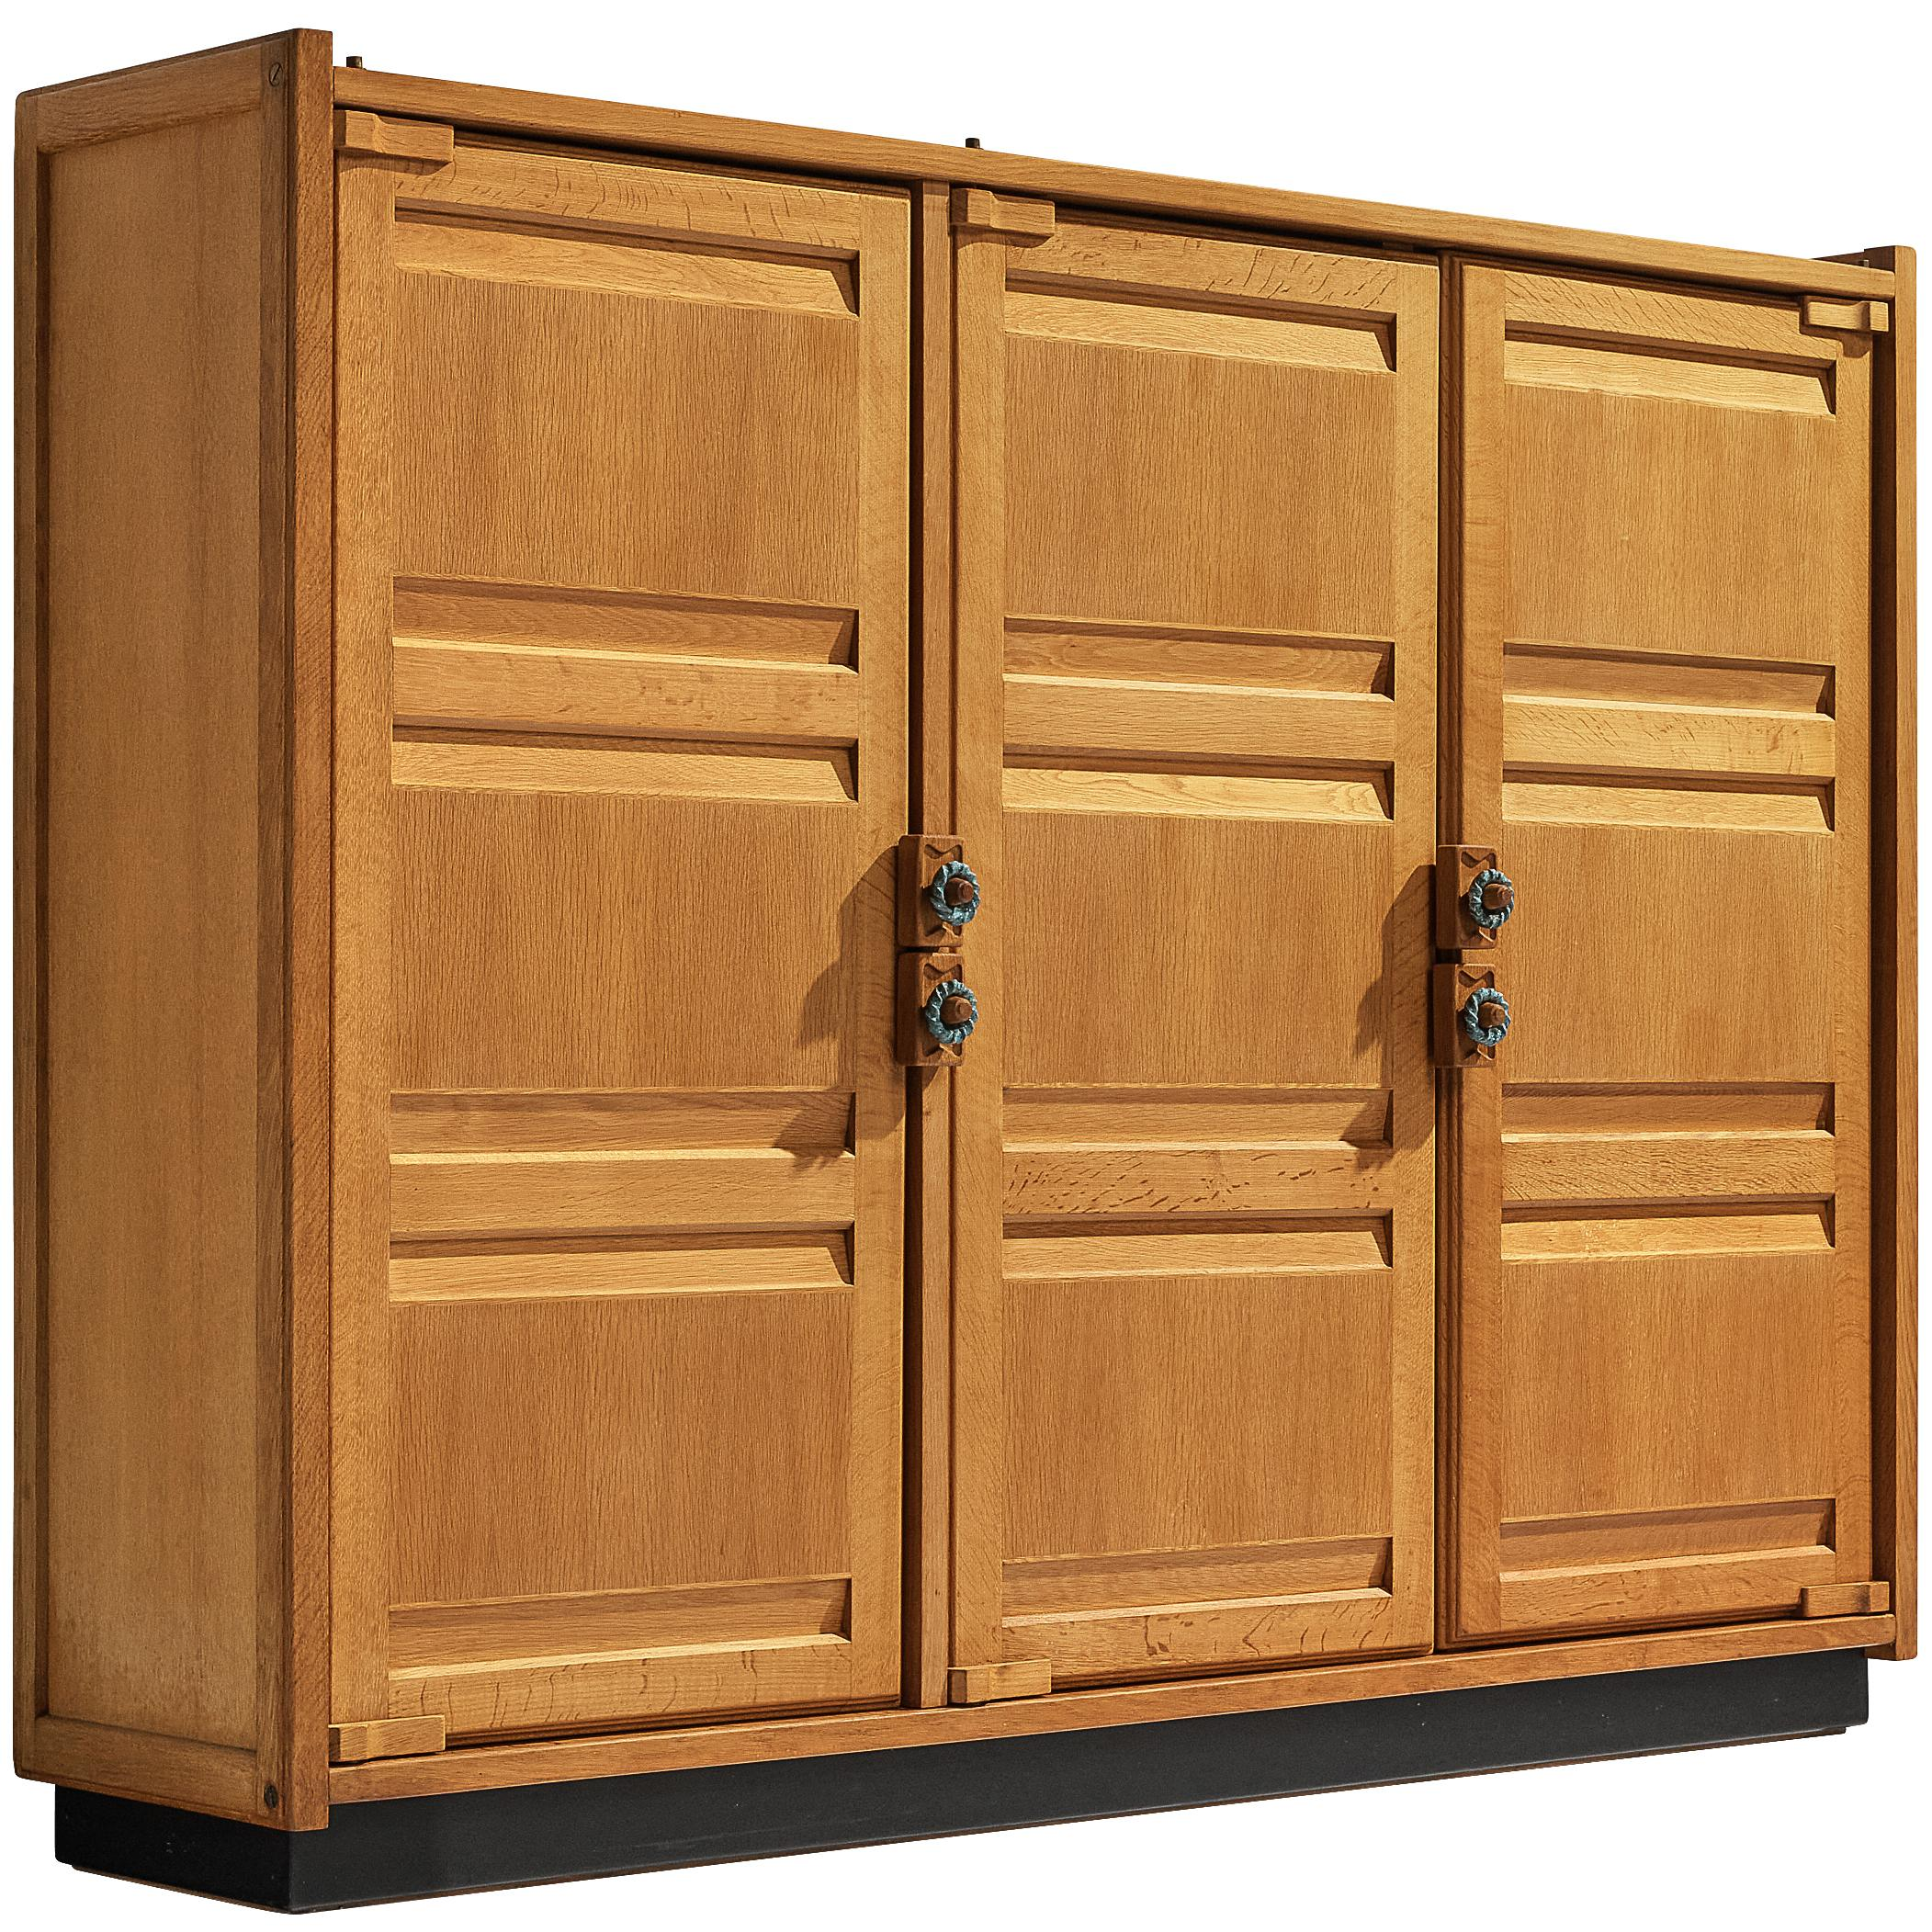 Guillerme & Chambron Wardrobe with Carved Doors in Oak